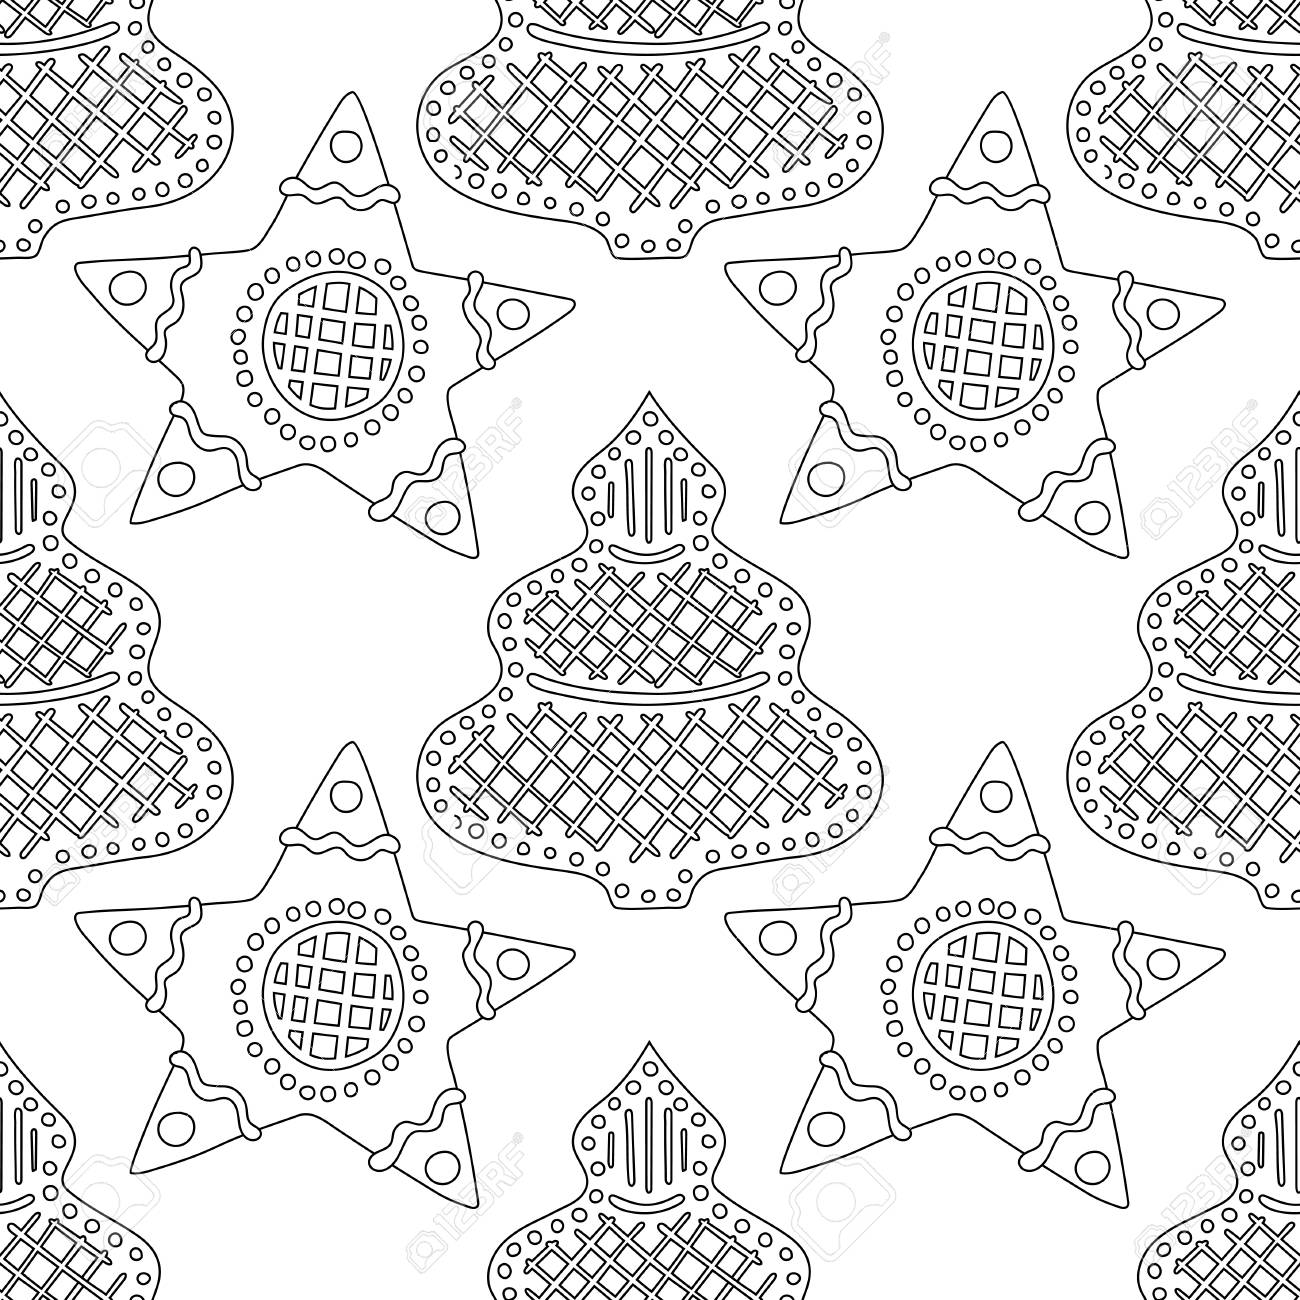 gingerbread black and white illustration for coloring book or page christmas and holiday background